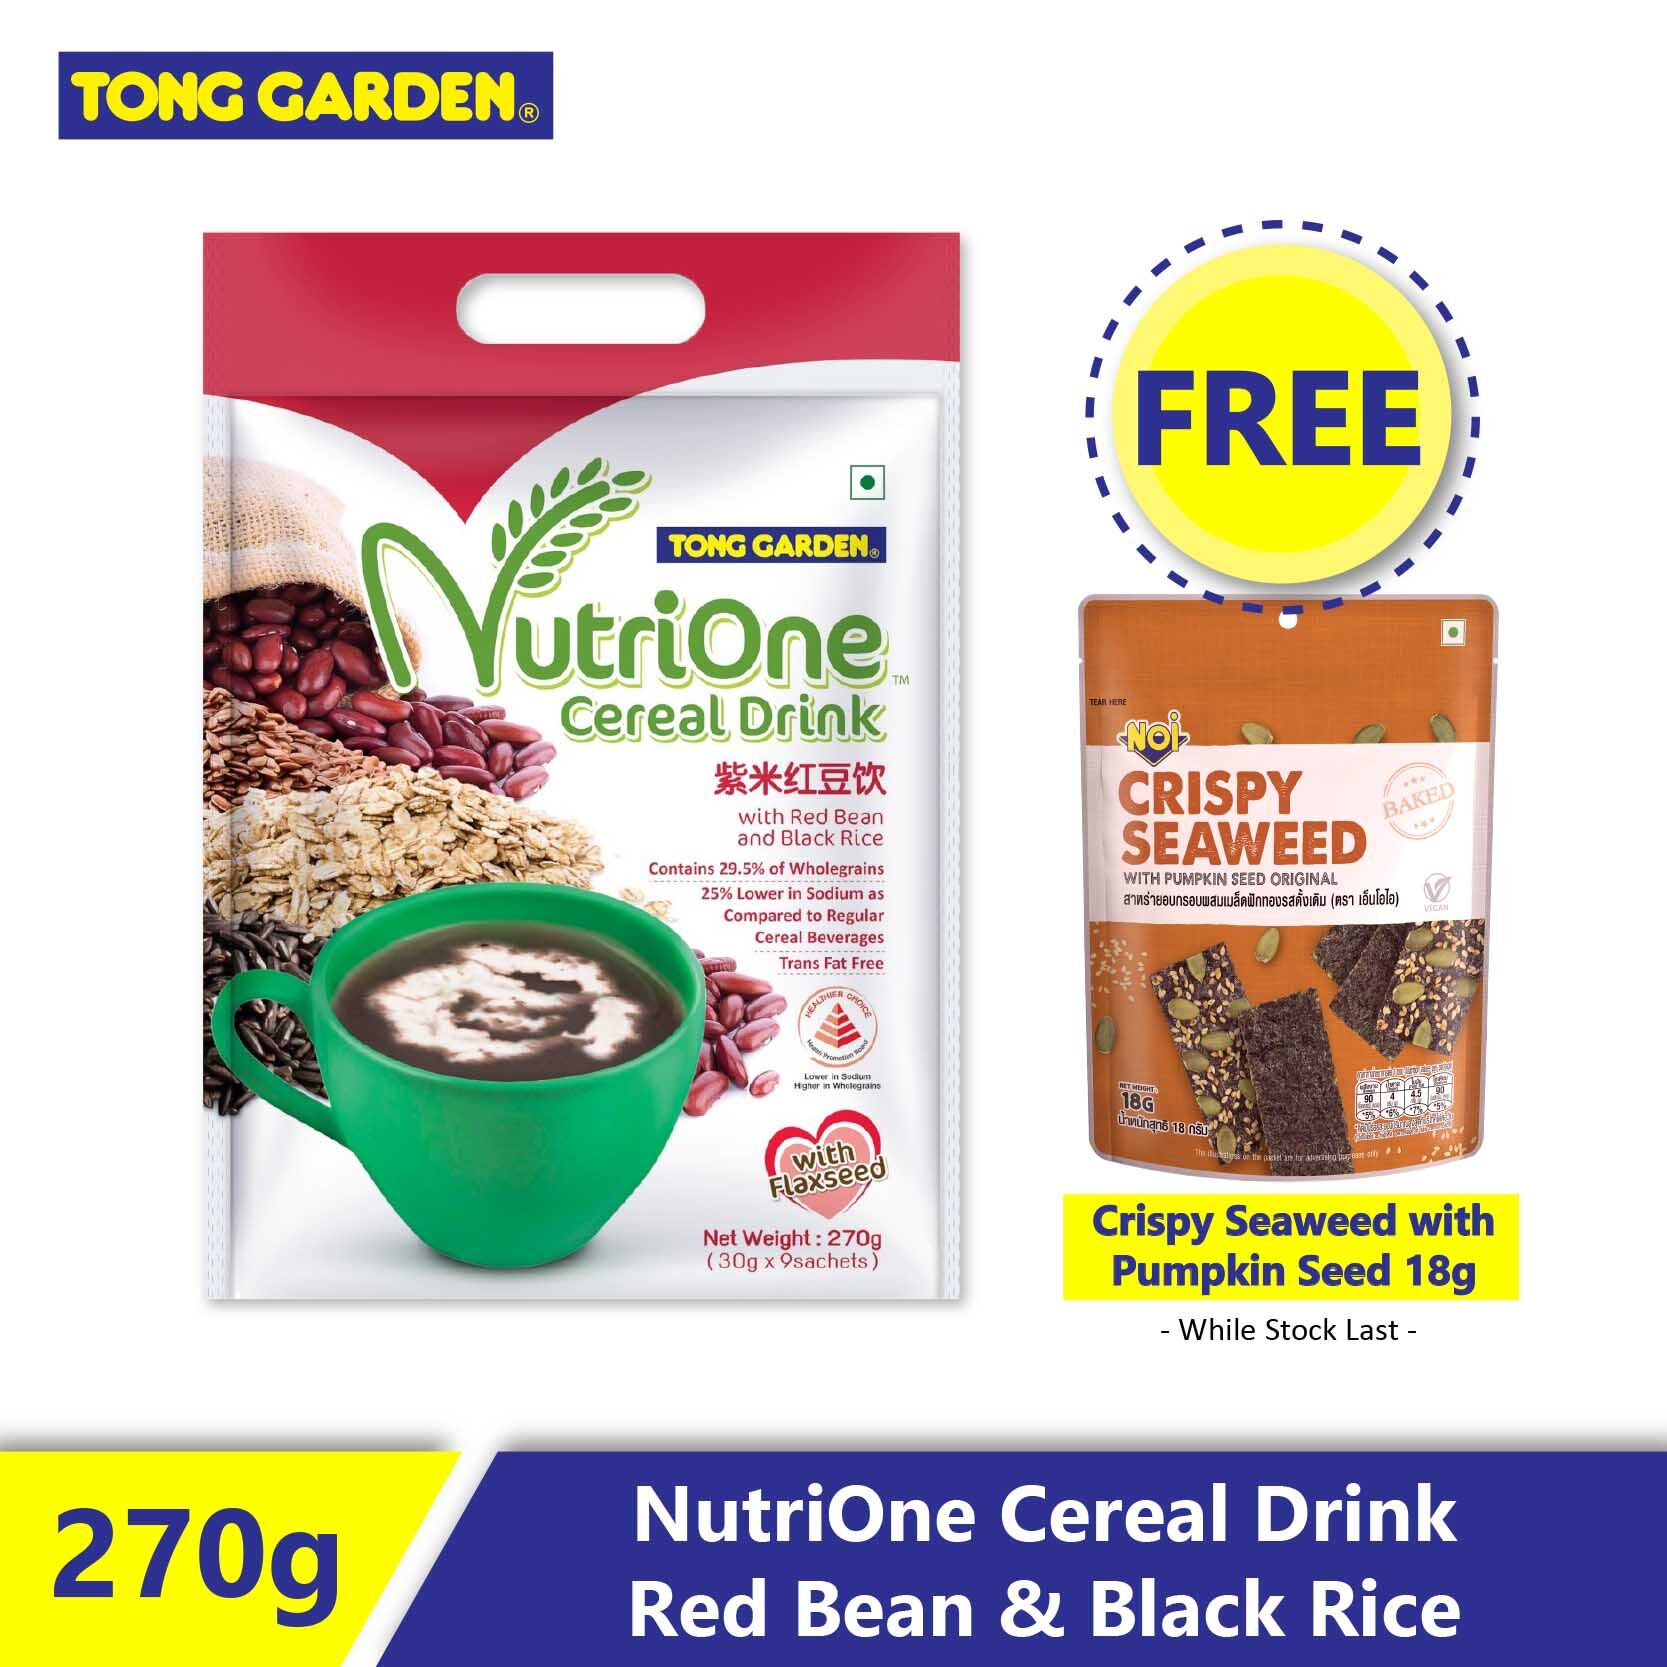 NutriOne Cereal Drink with Red Bean and Black Rice with Flaxseed FOC Seaweed 18g